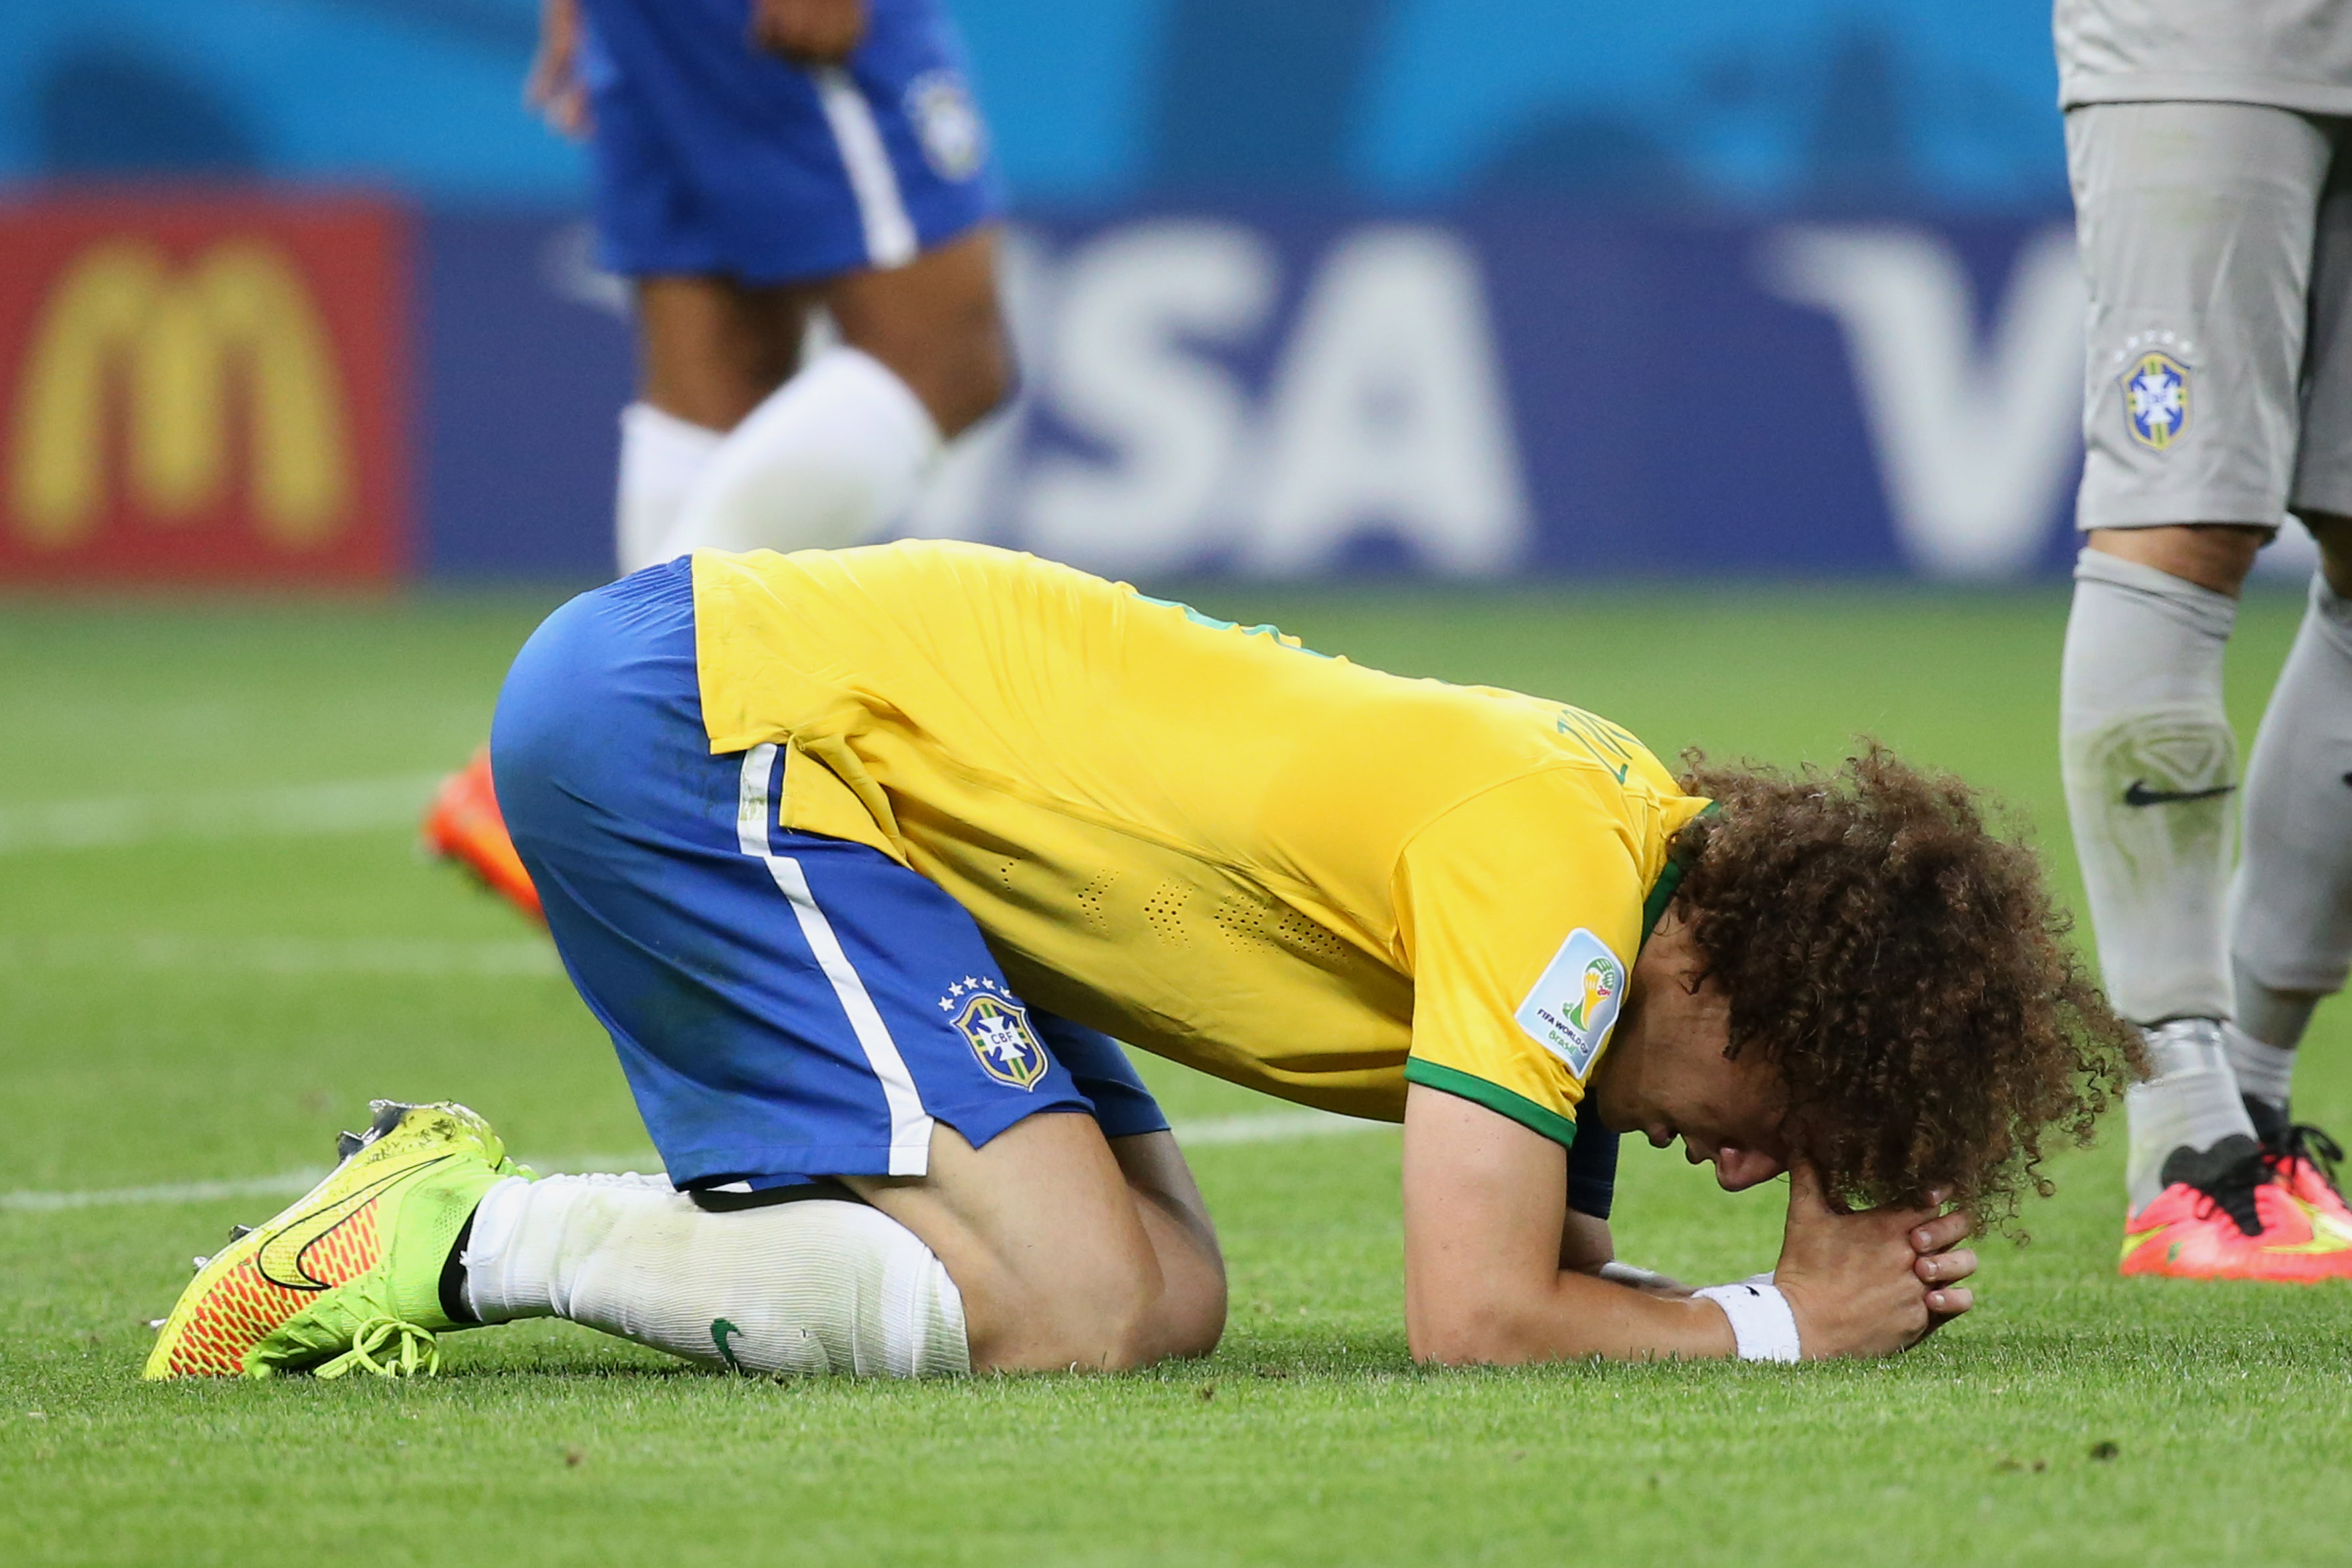 BELO HORIZONTE, BRAZIL - JULY 8: David Luiz of Brazil looks dejected after the 2014 FIFA World Cup Brazil Semi Final match be